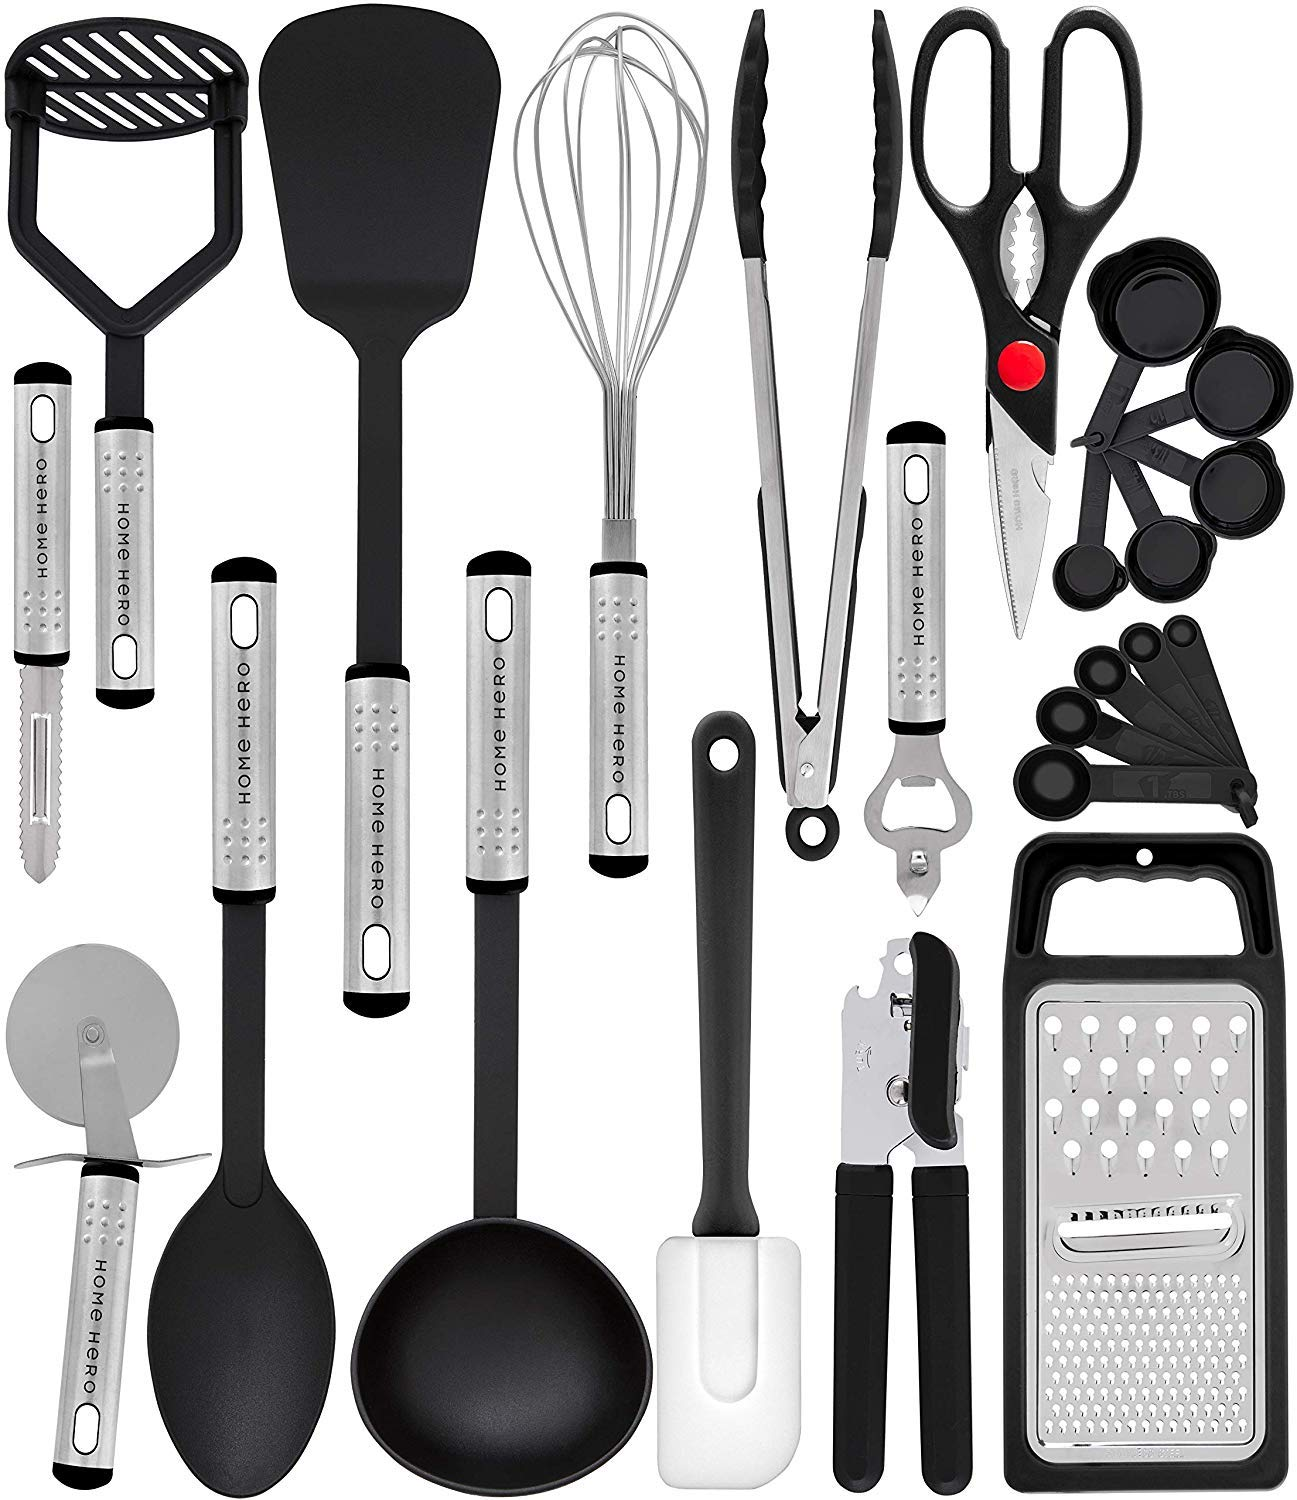 Home Hero Kitchen Utensil Set - 23 Nylon Cooking Utensils - Kitchen Utensils with Spatula - Kitchen Gadgets Cookware Set - Best Kitchen Tool Set by Home Hero